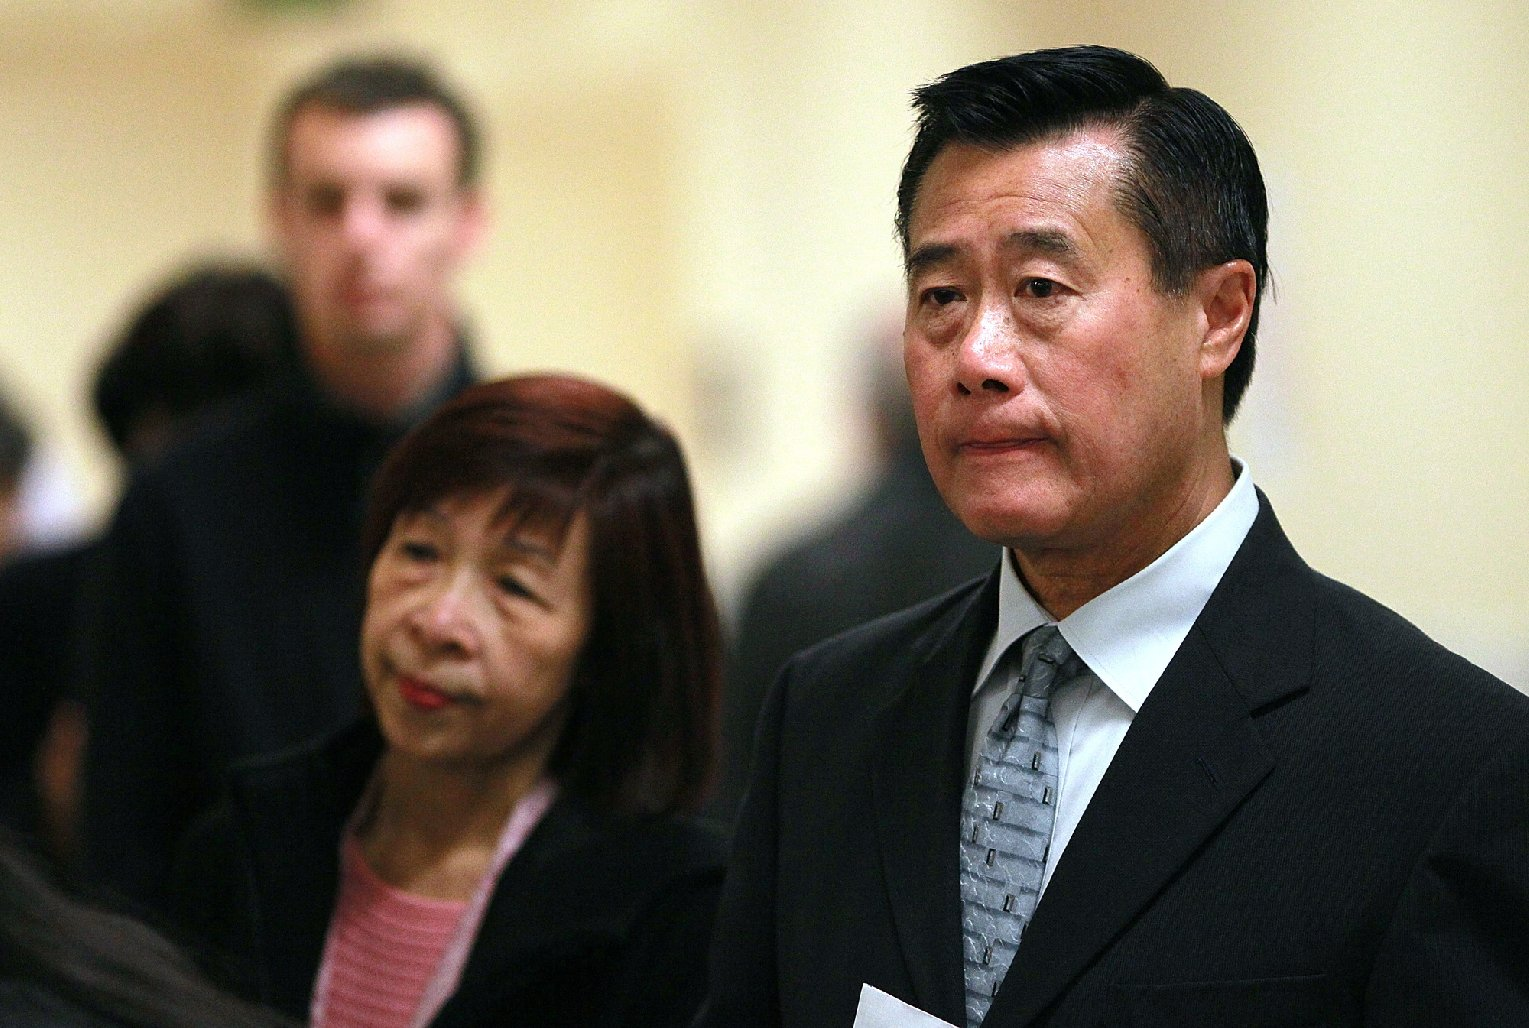 Leland Yee Remains Free on $500,000 Bail After Court Hearing